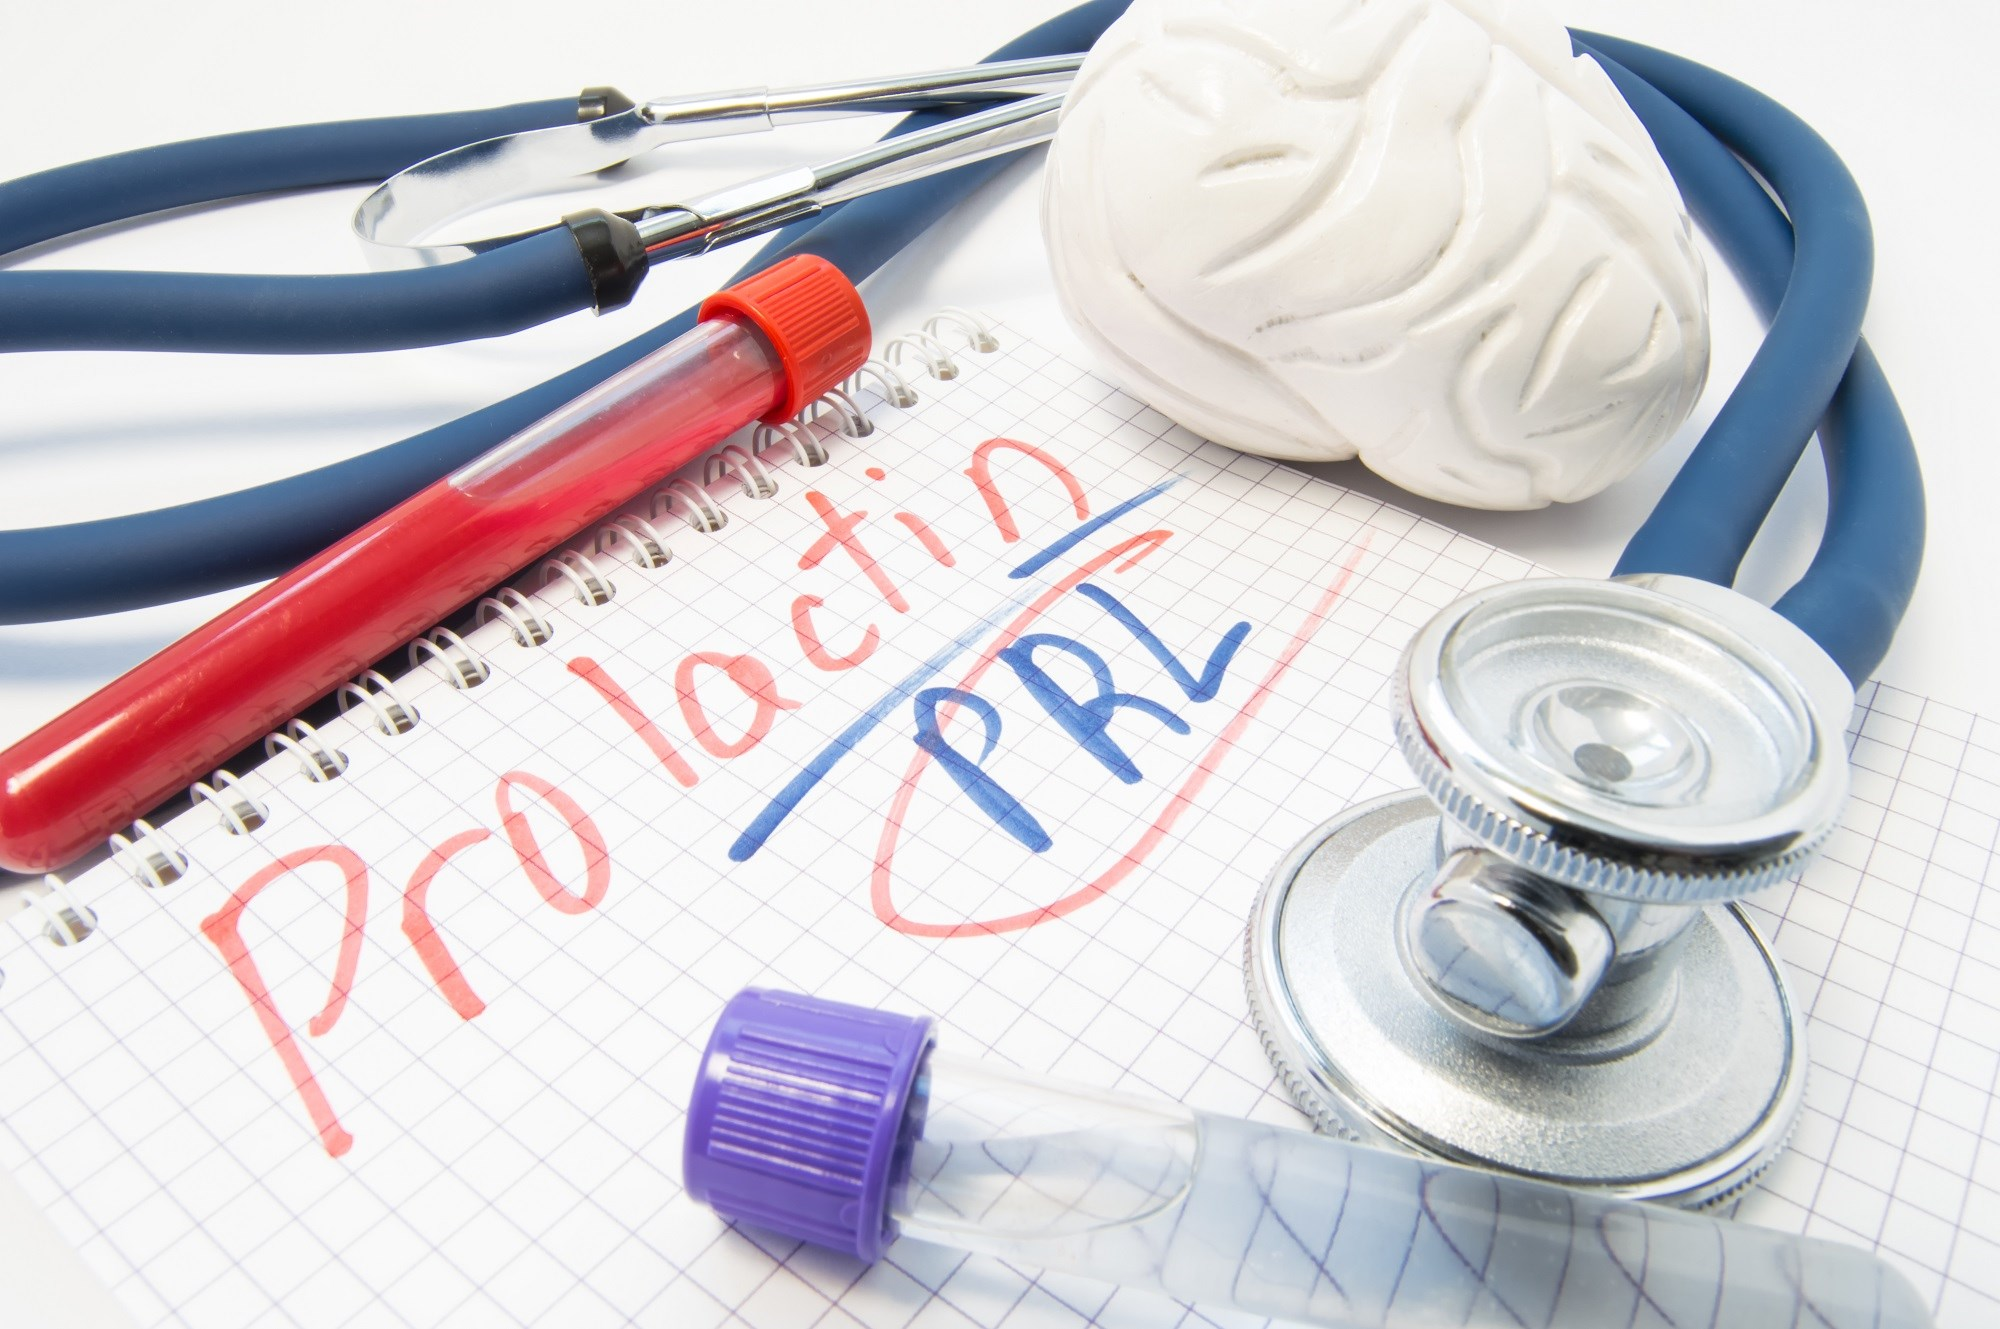 Hyperprolactinemia and Insulin Resistance Associated With First-Episode Psychosis